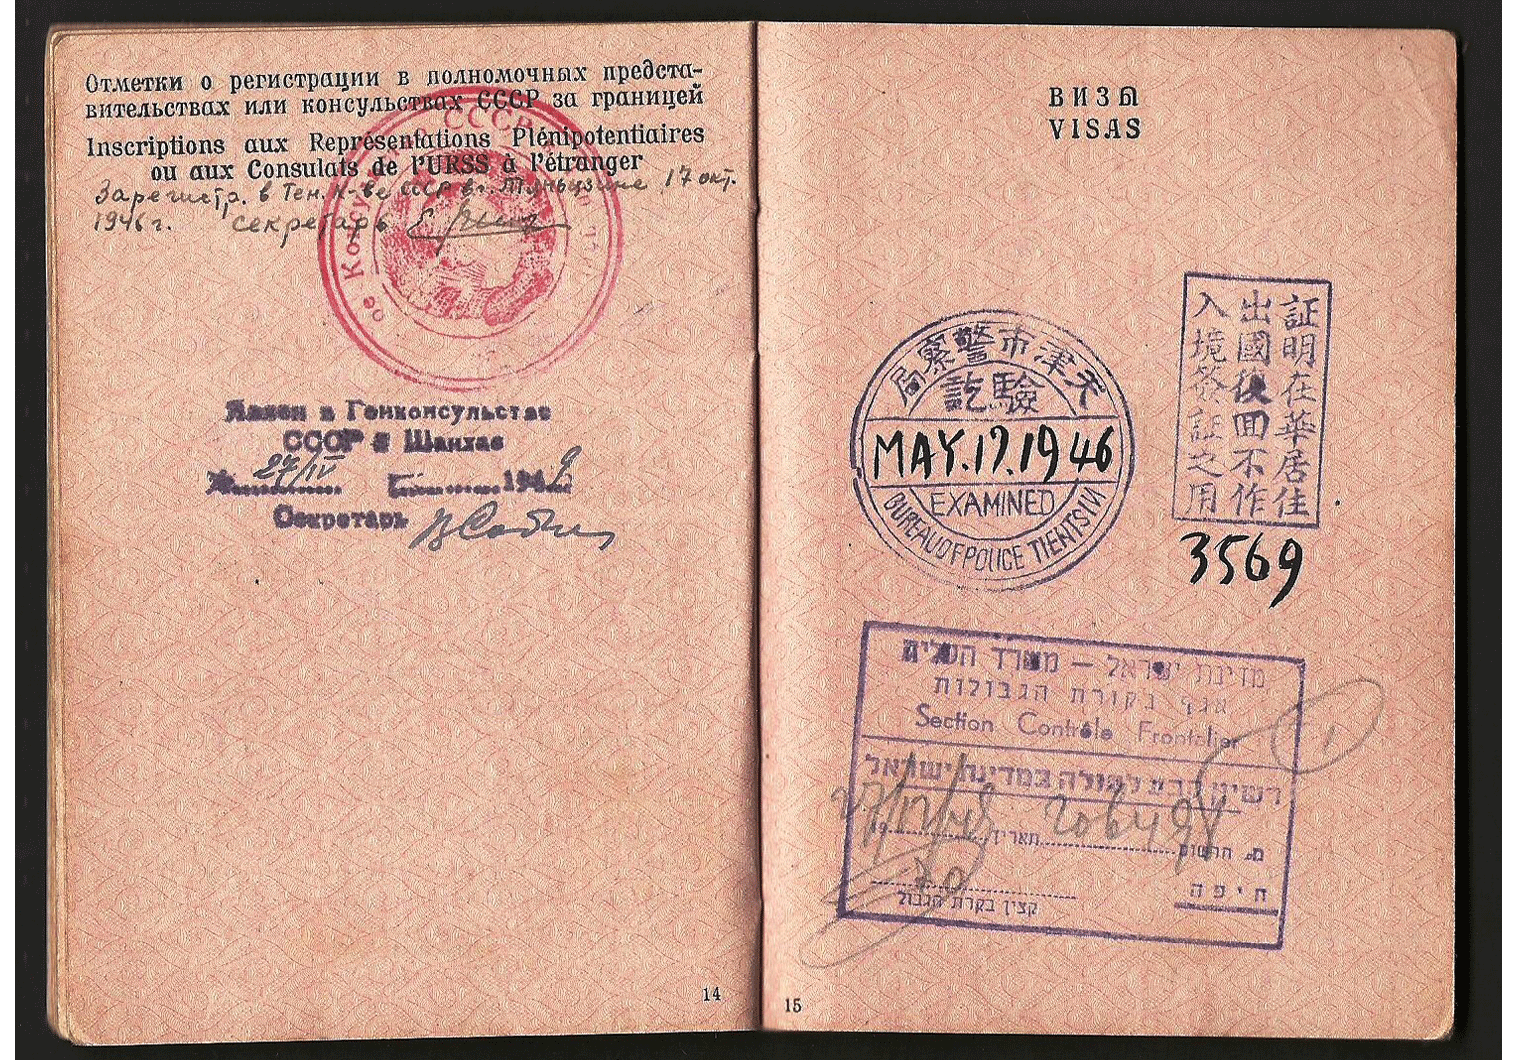 WW2 USSR passport